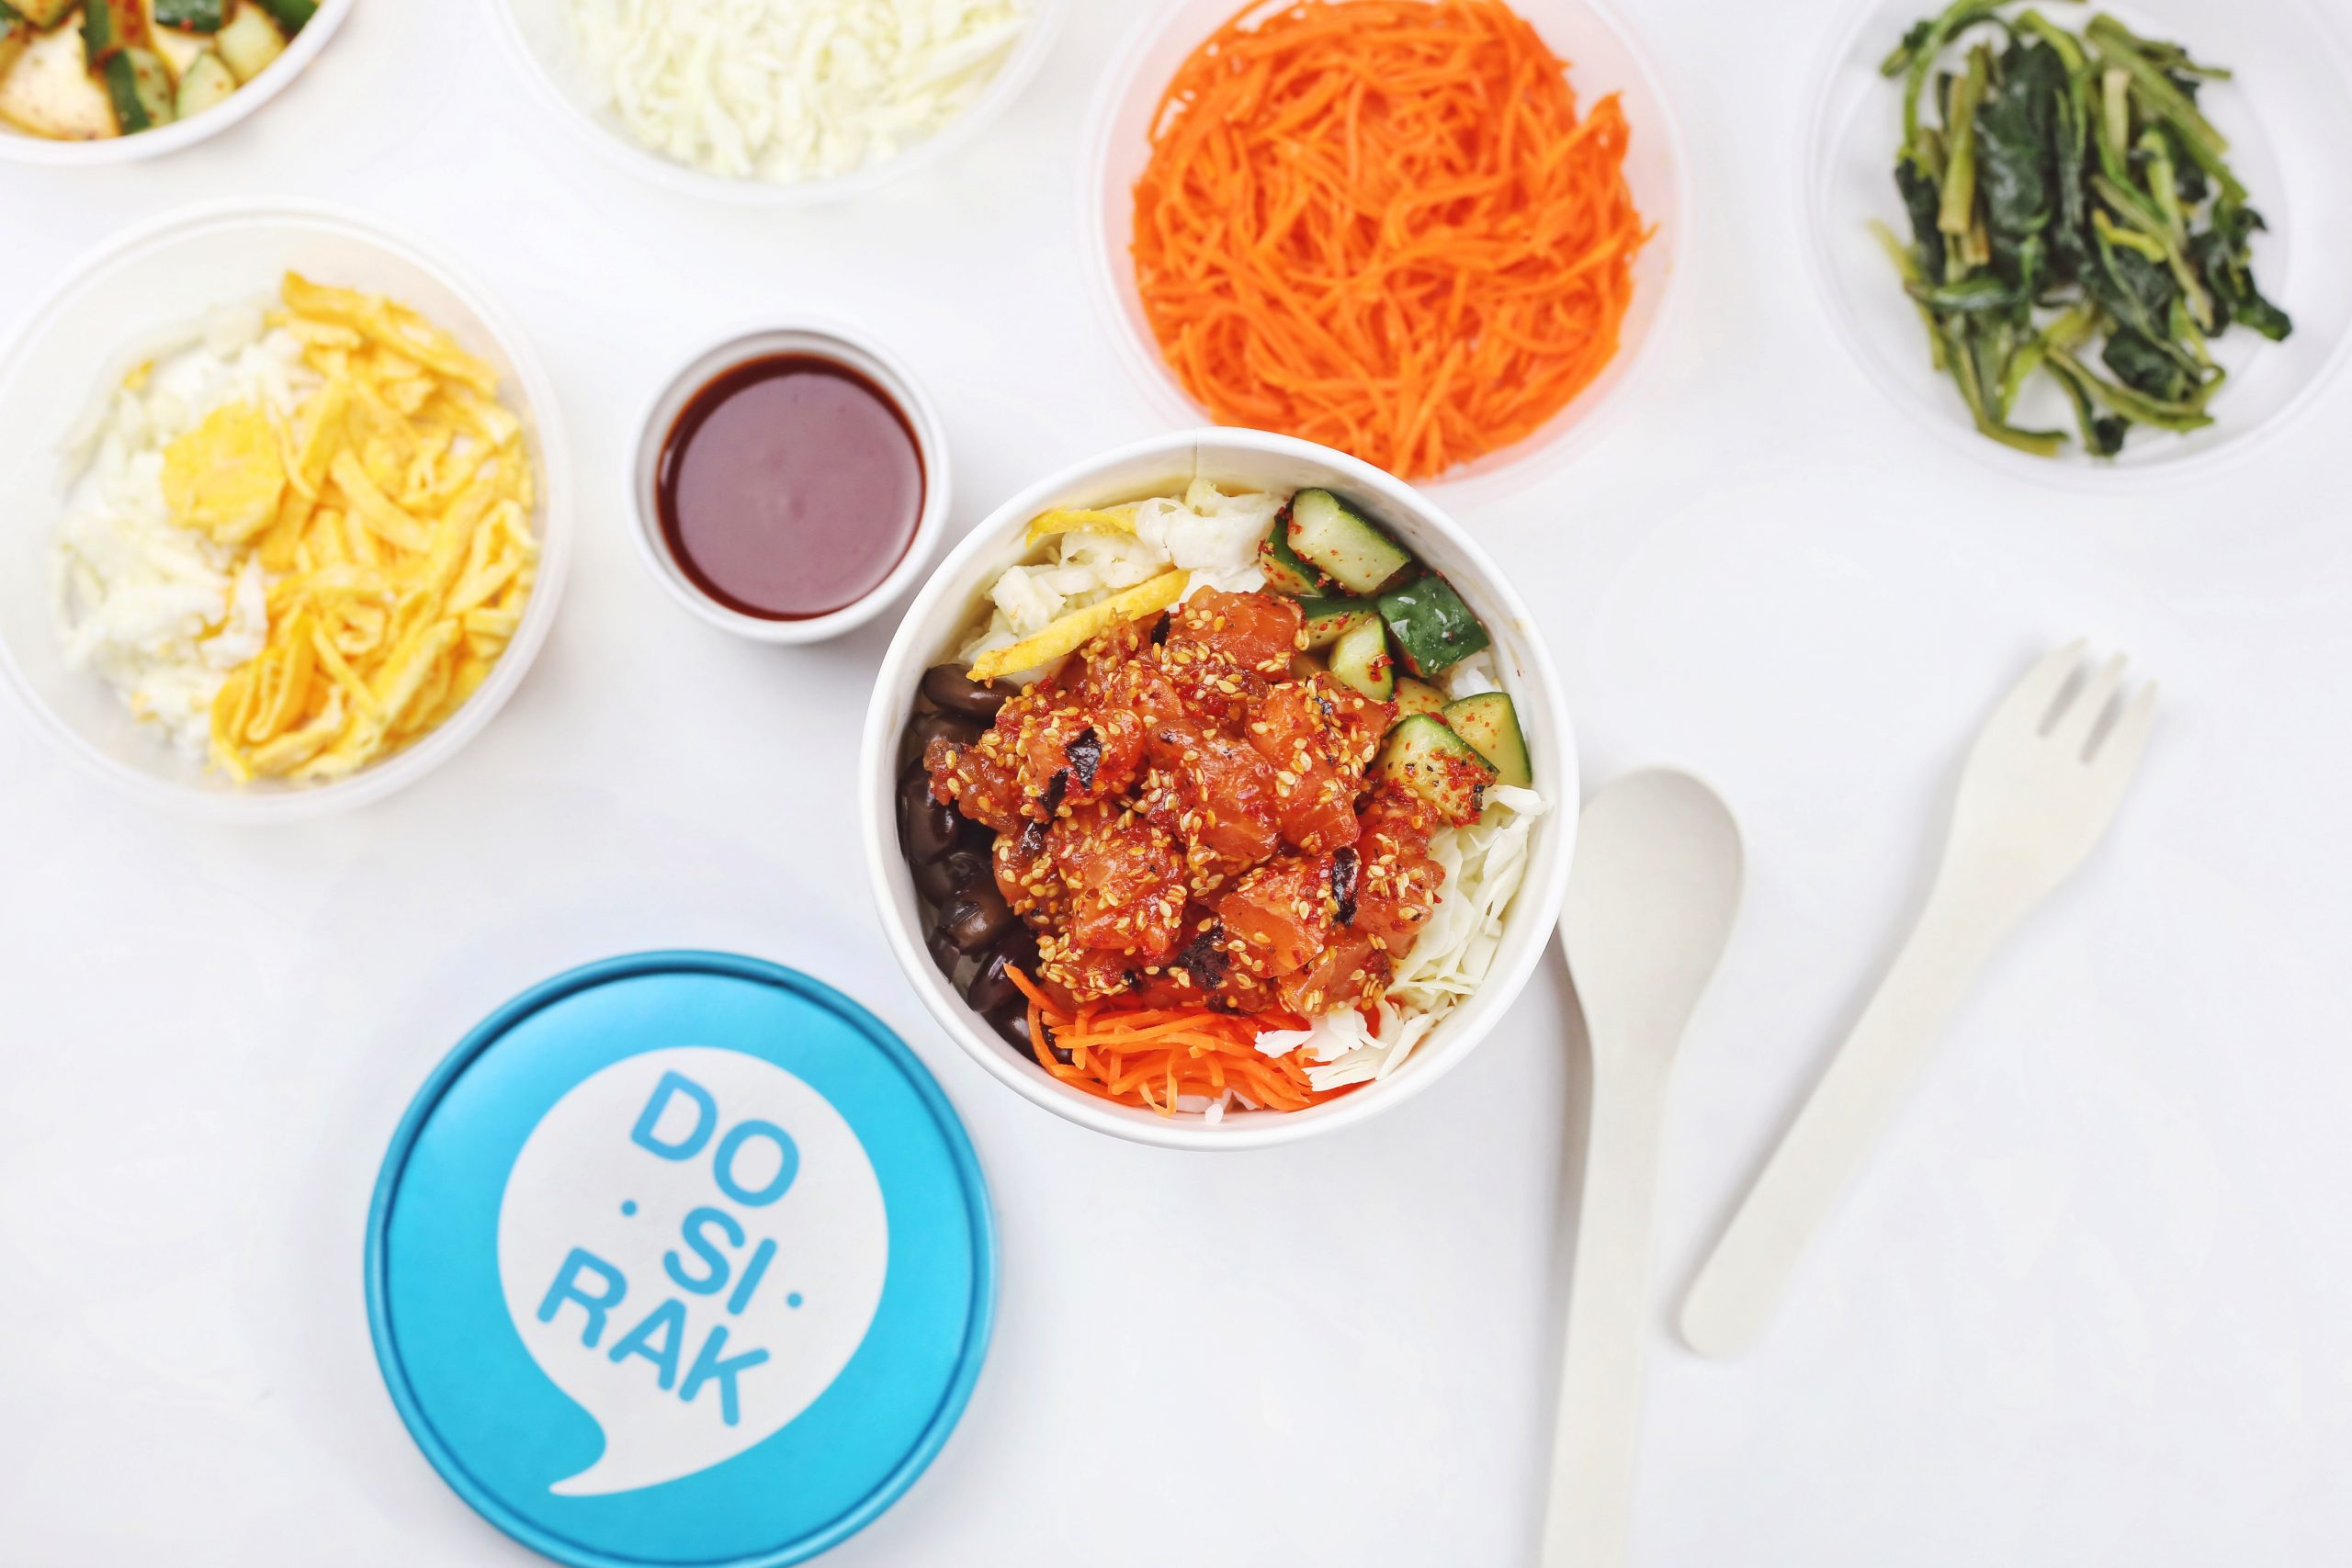 Named after the traditional Korean lunch-box, fast-casual Korean eatery Dosirak is shaking things up in Singapore with a menu offering vegan, pescatarian, gluten-free and low carb options.